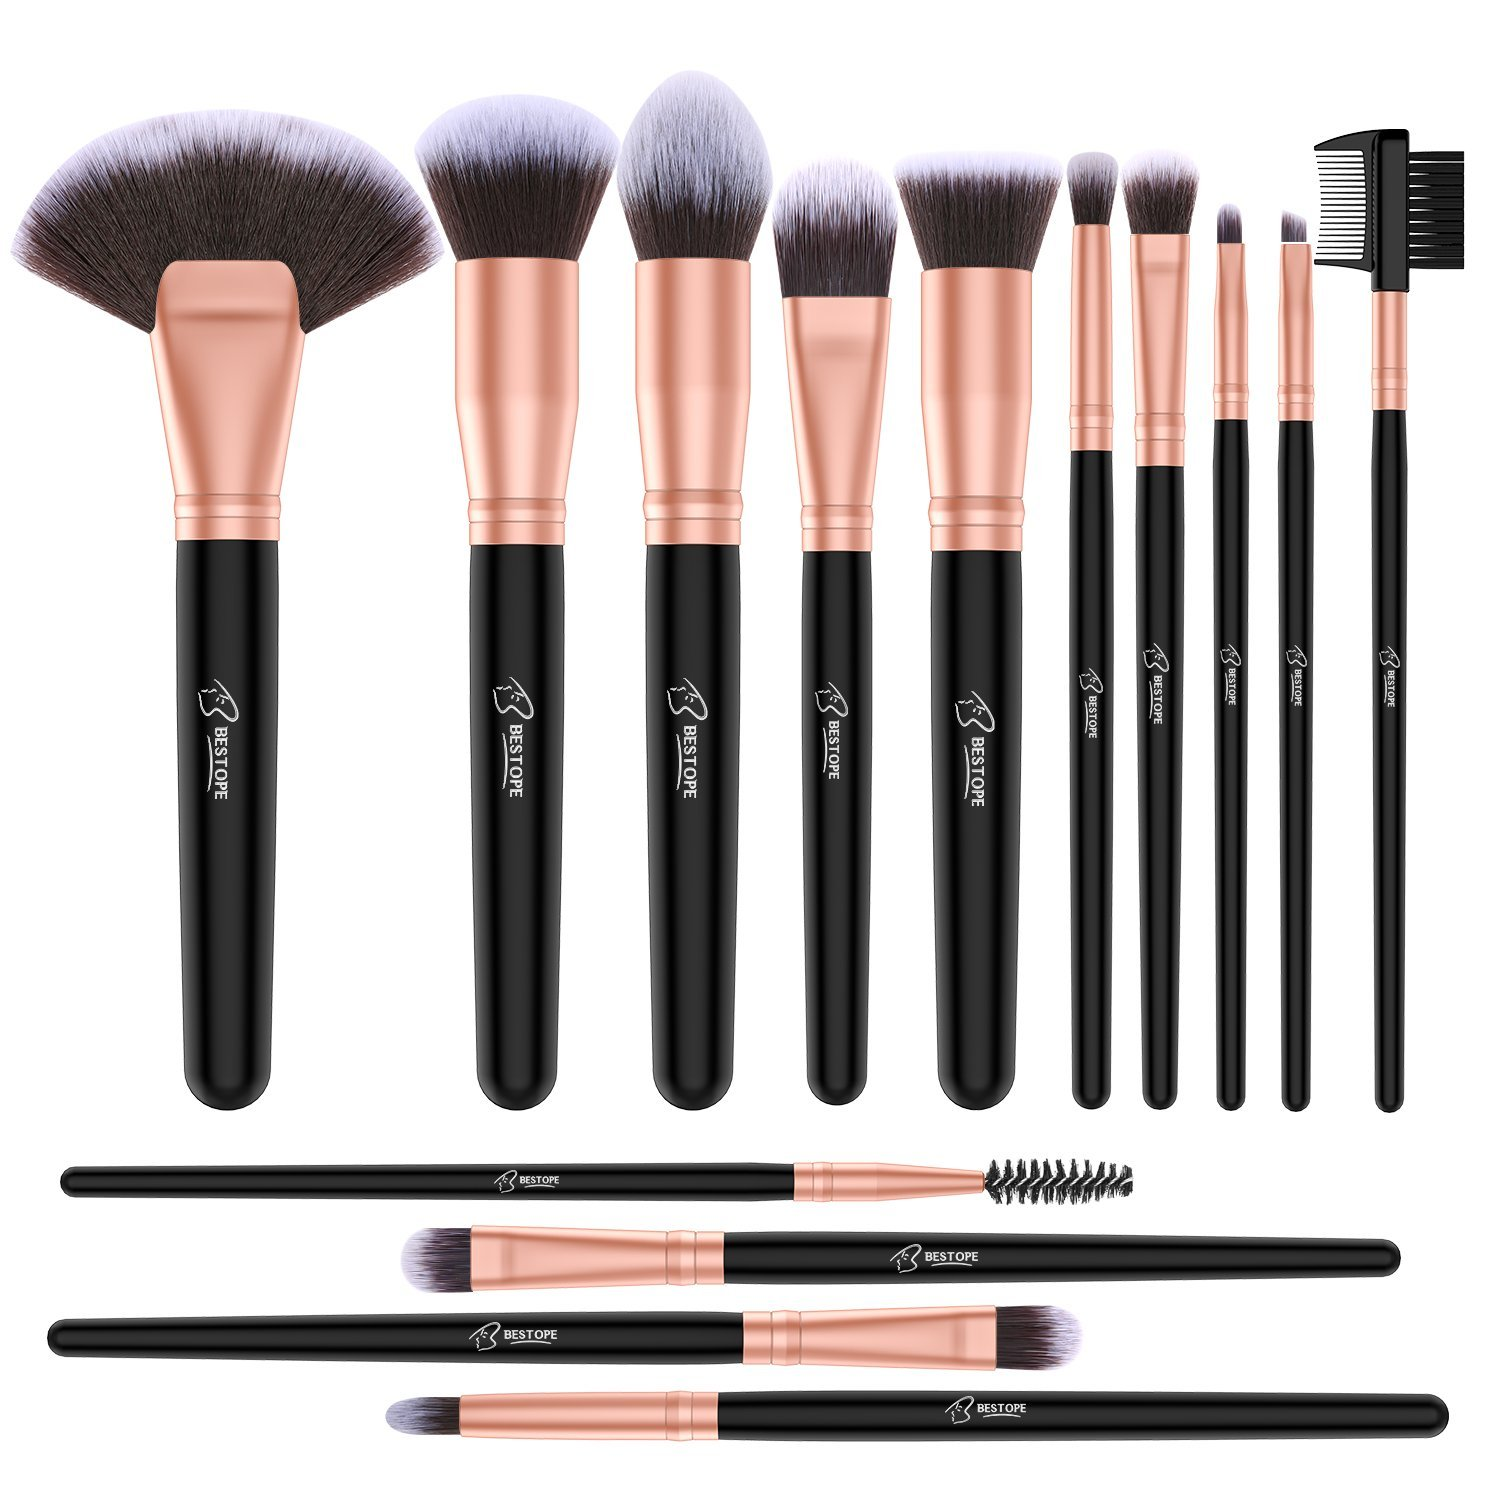 BESTOPE Makeup Brushes 10 Pieces Professional Makeup Brush Set Synthetic Kabuki Foundation Blending Concealer Blush Eye Face Lip Powder Cosmetic Brush(Golden Black) BESTOPE CA